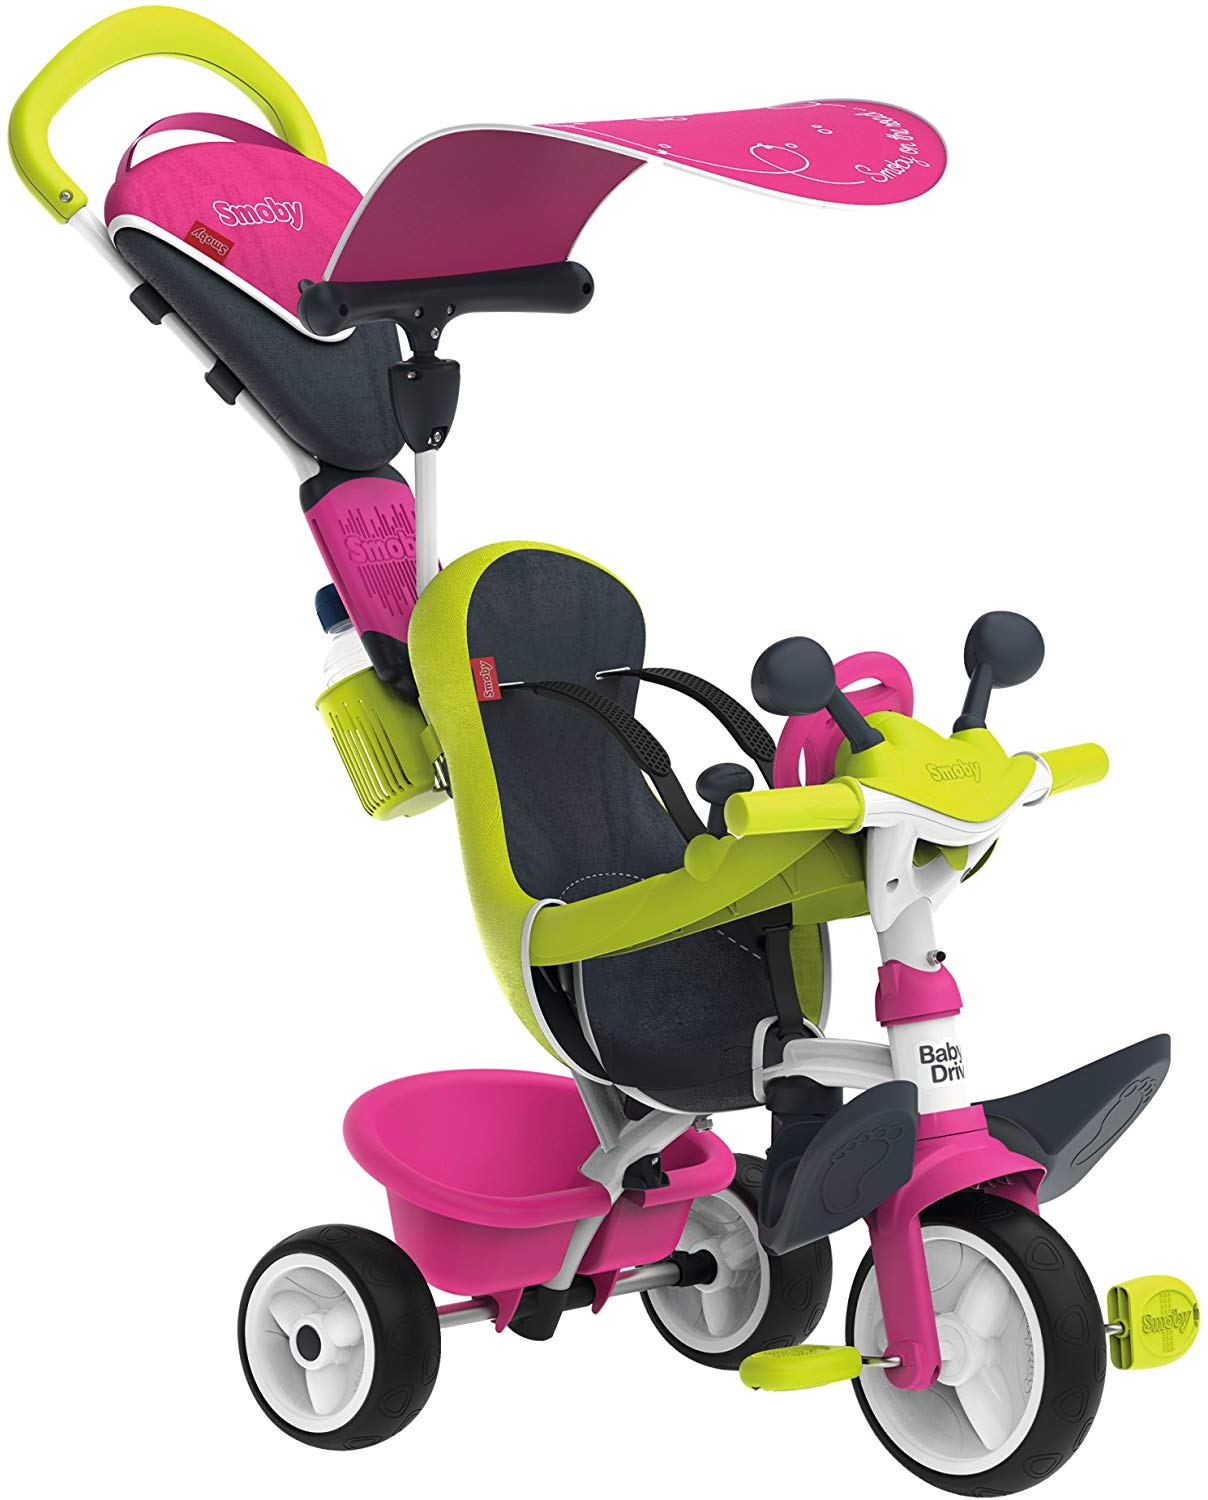 Smoby - 741201 - Tricycle Baby Driver Confort 2 - Tricycle Evolutif - Roues Silencieuses - Dispositif Roue Libre + Verrouillage Guidon - Rose